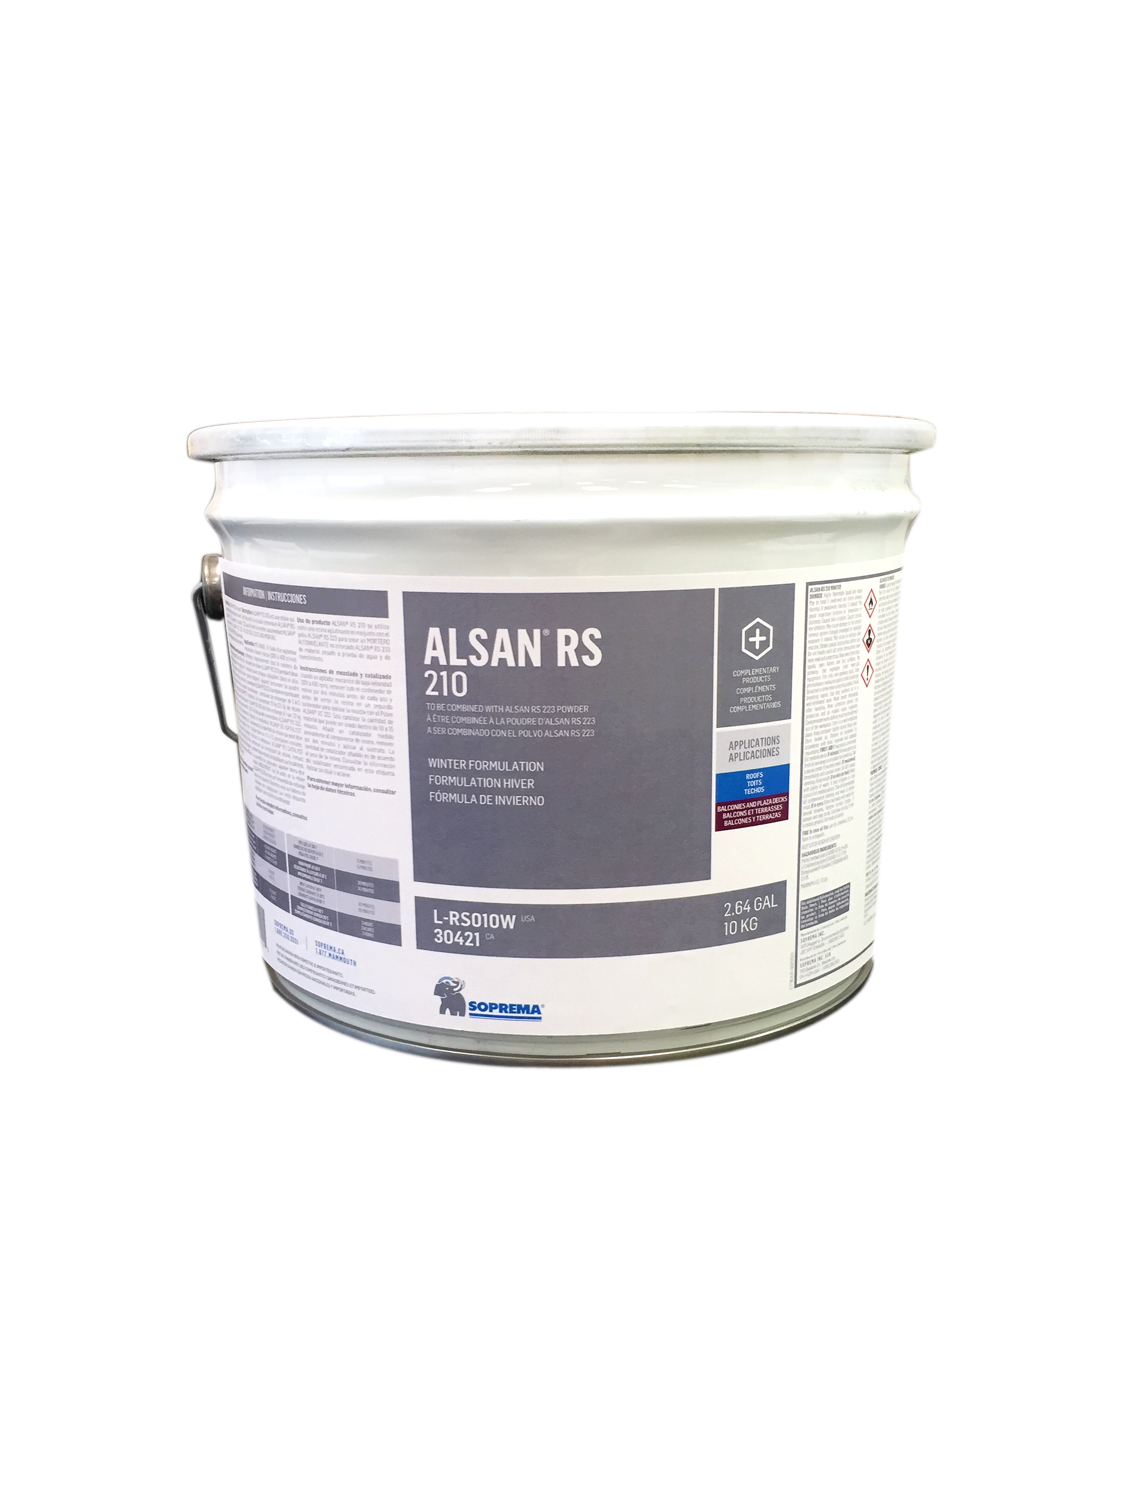 Alsan Rs 210 Soprema